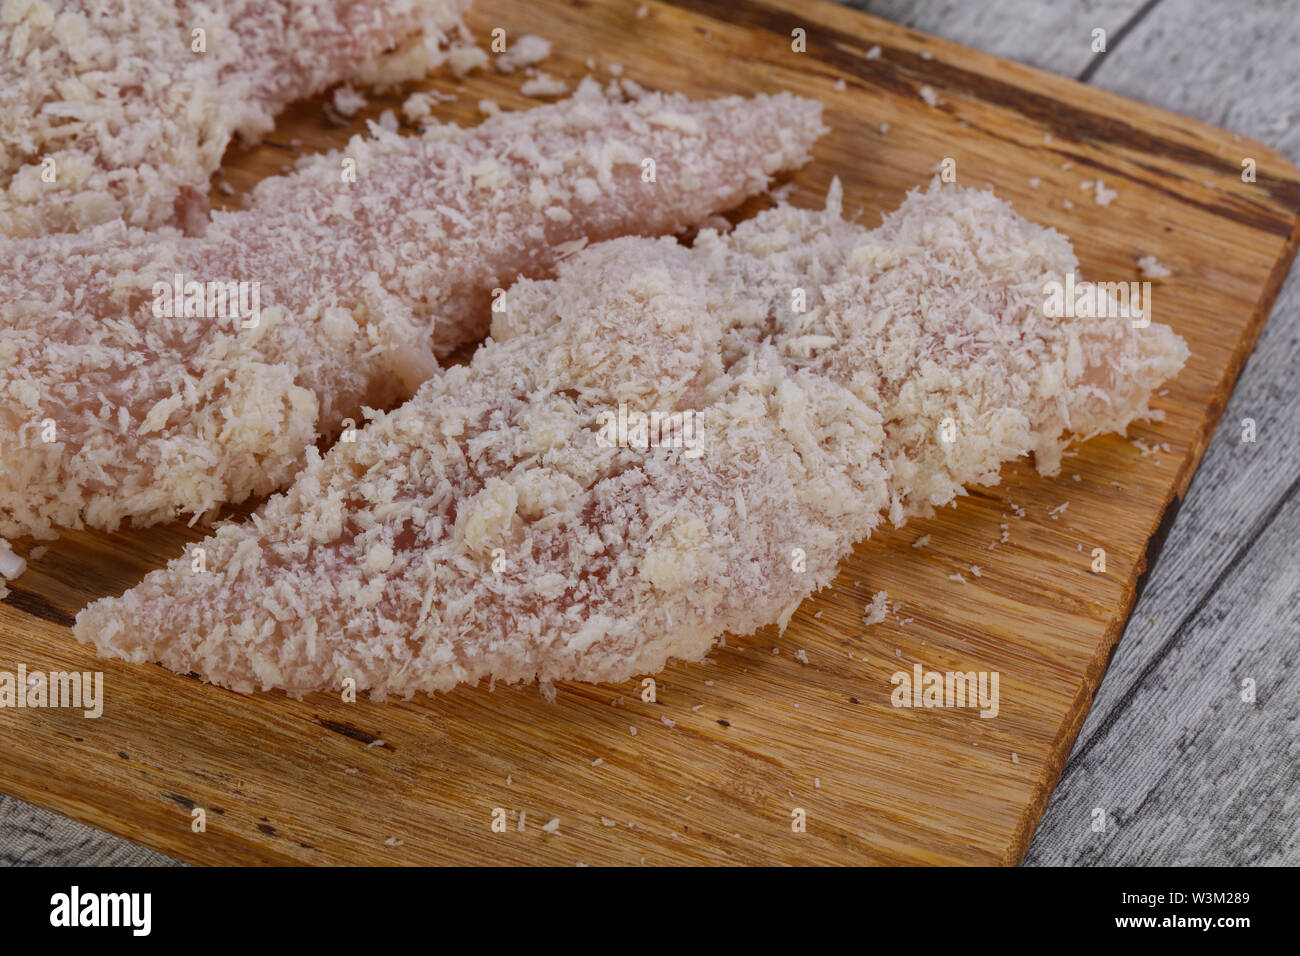 Raw chicken cutlet ready for cooking - Stock Image